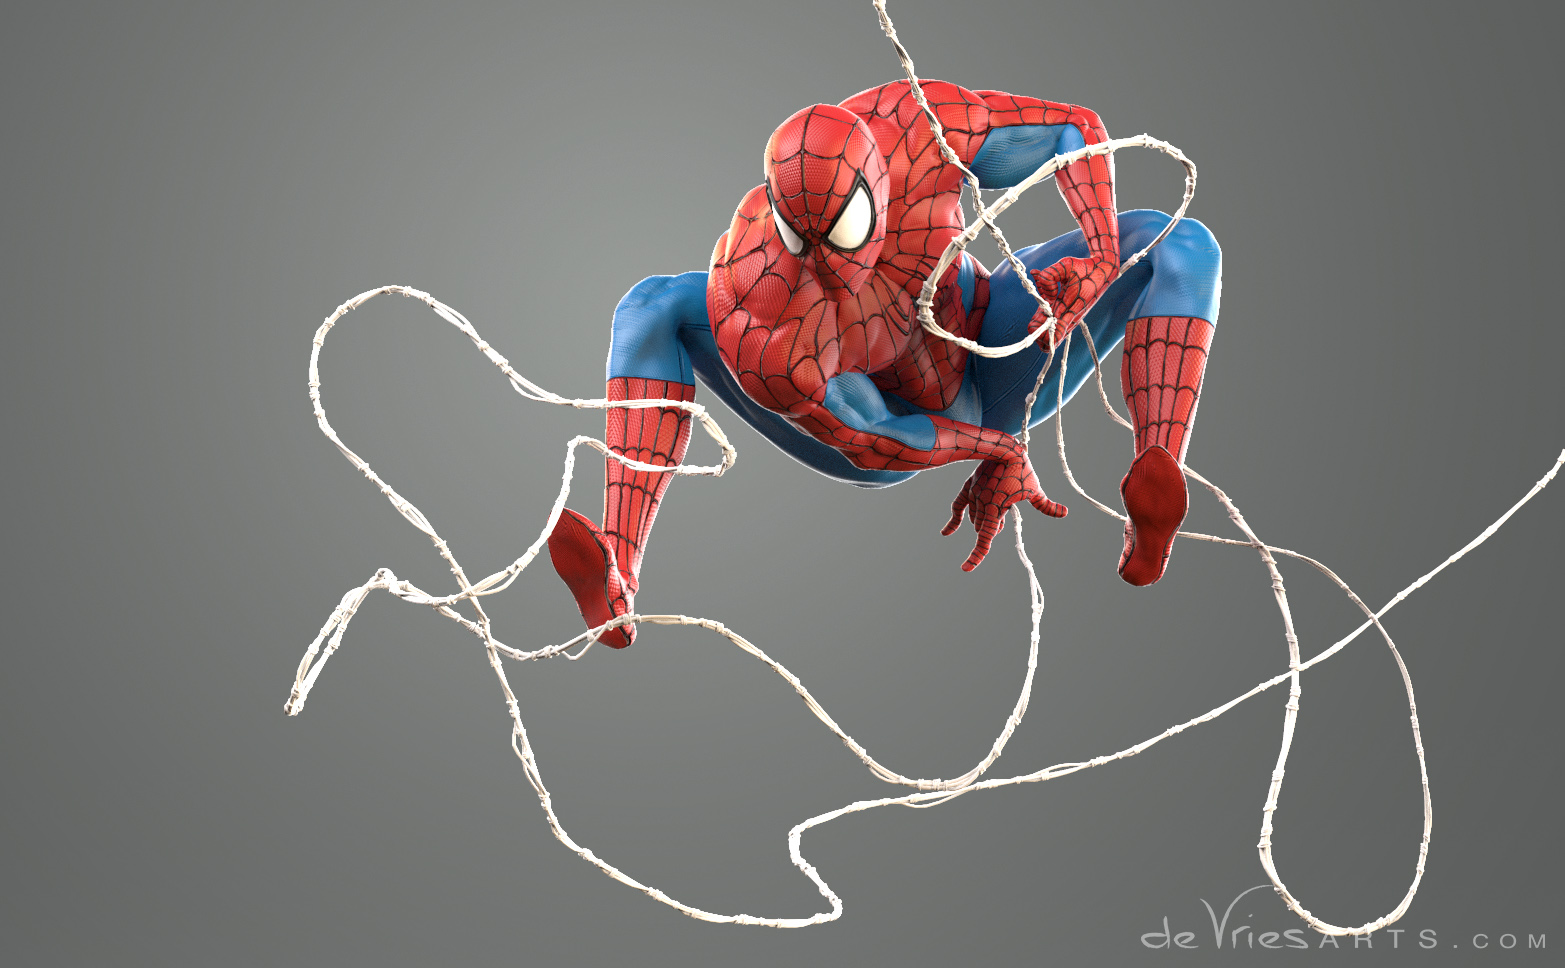 webslinger_spiderman_ThijsDeVries_deVriesArts.jpg